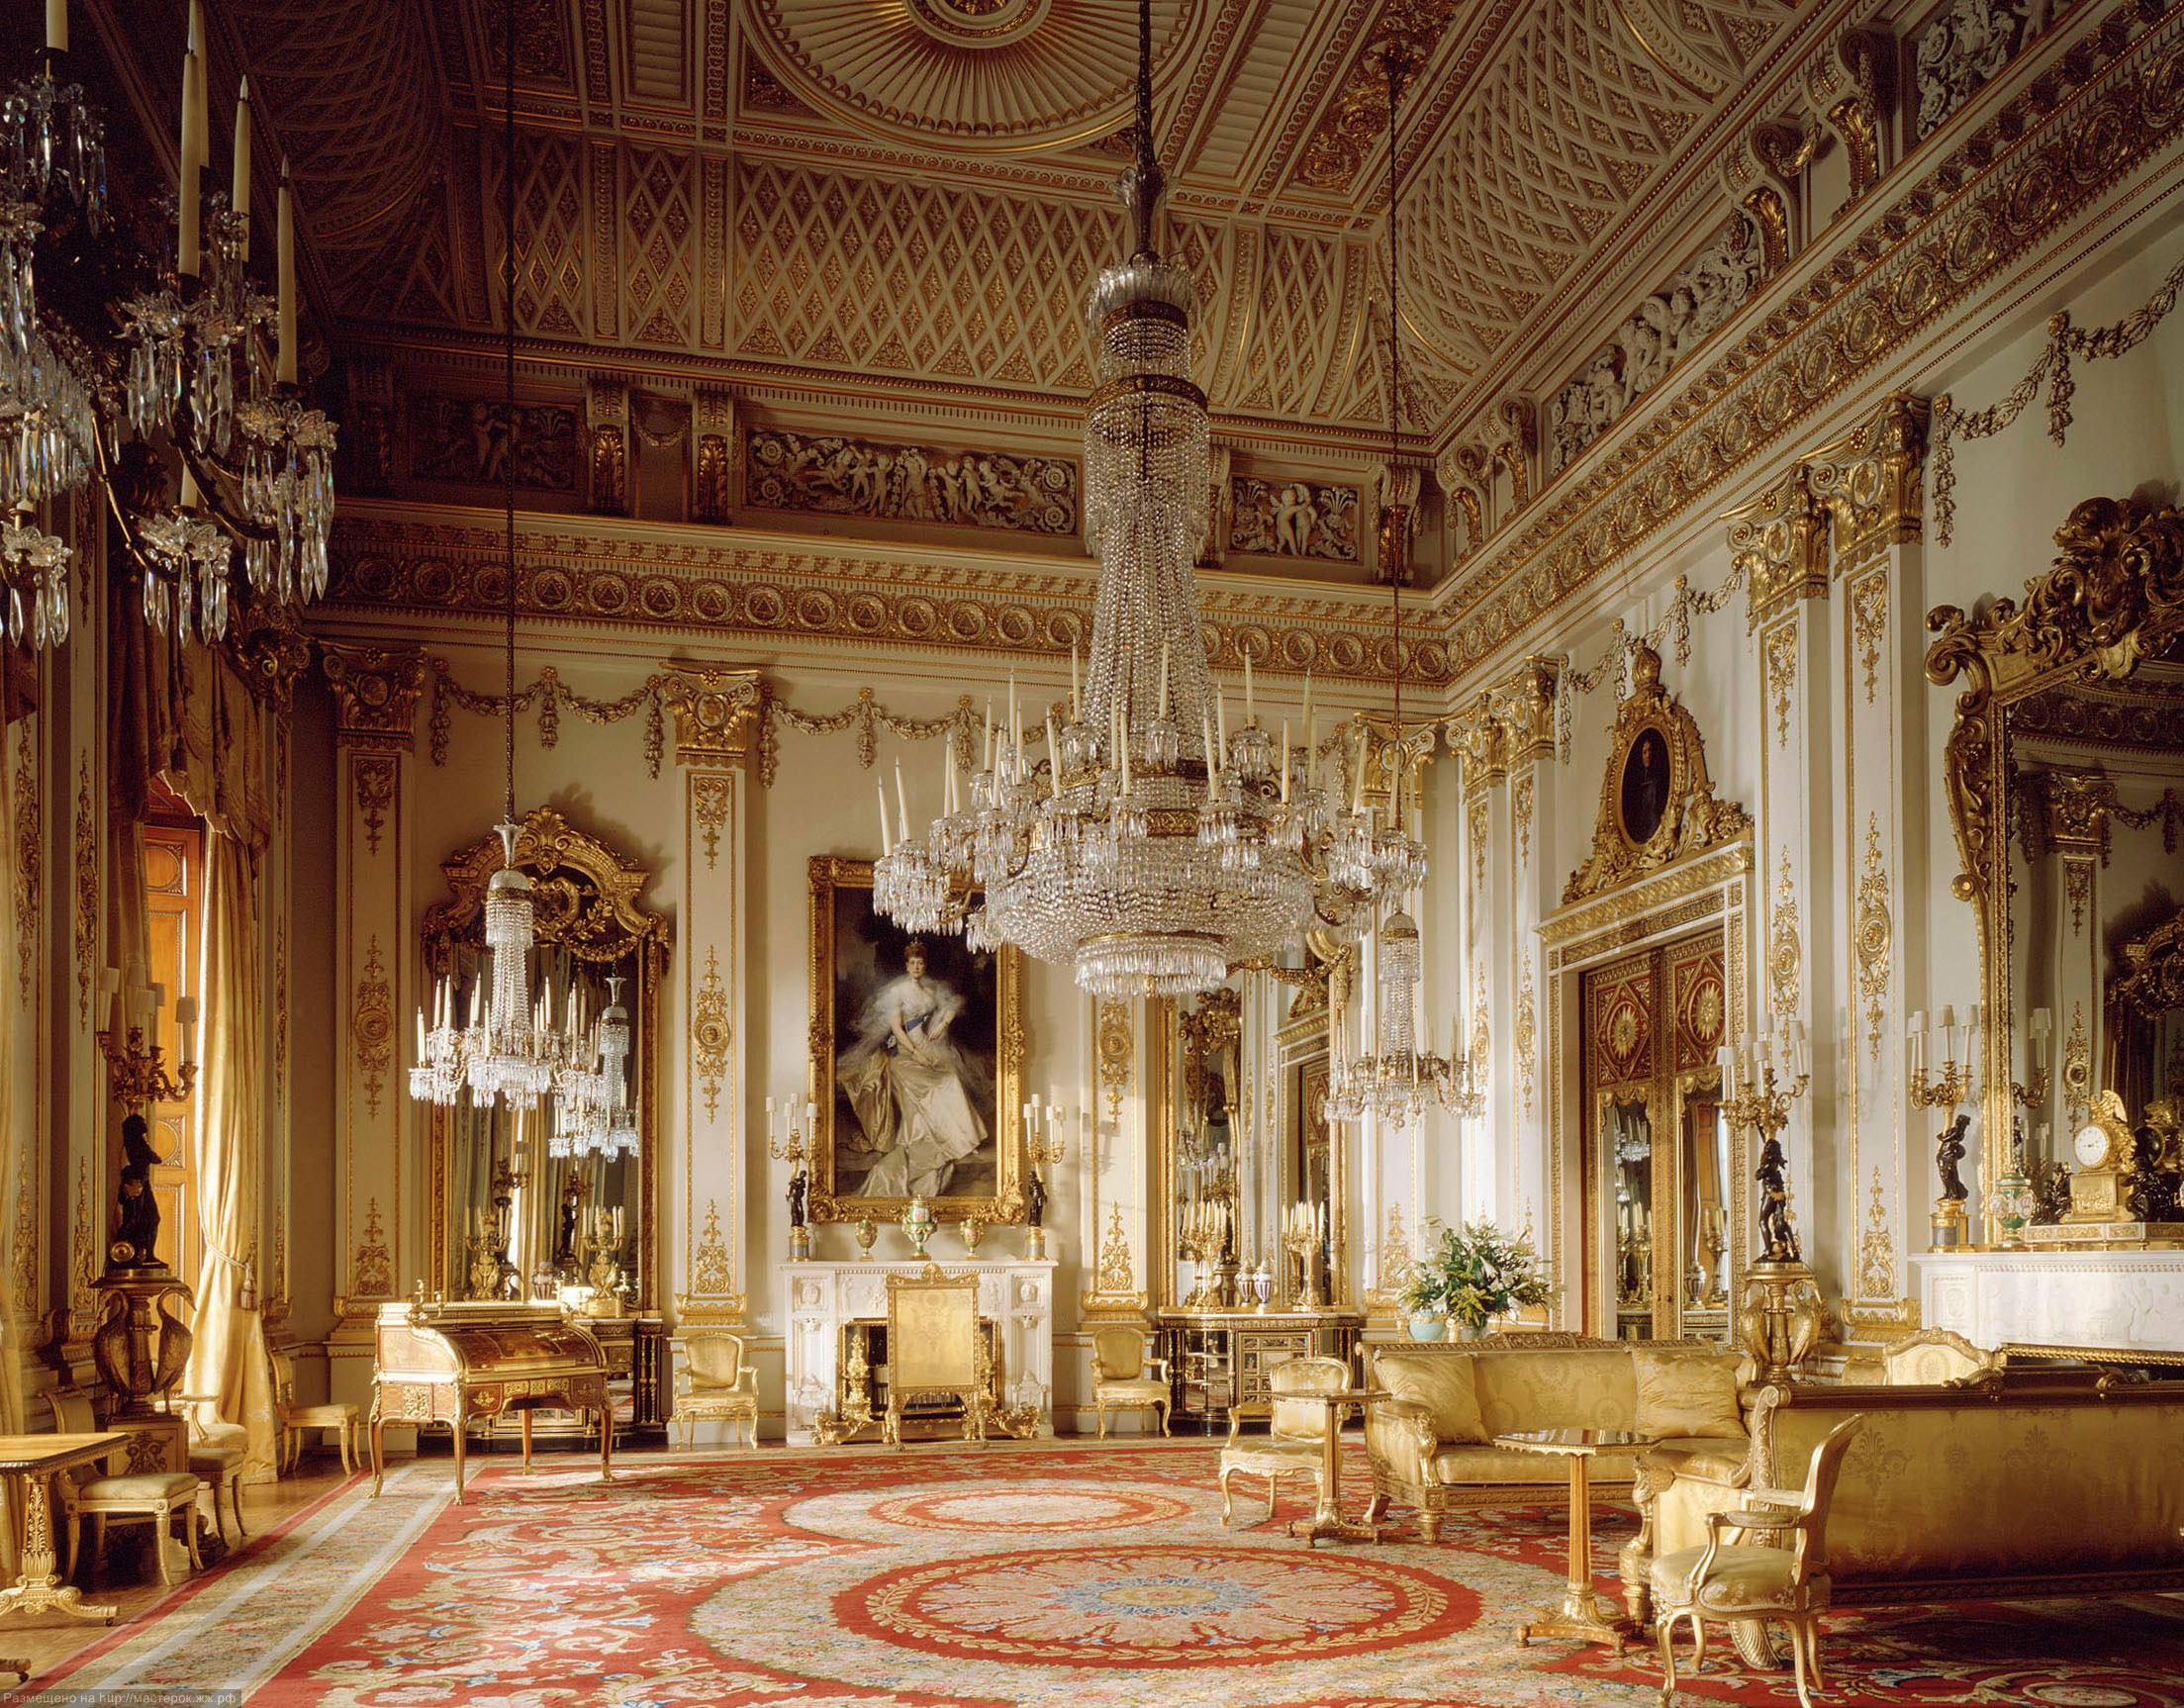 The Royal Collection © 2002, Her Majesty Queen Elizabeth II<br /><br />Photo: Derry Moore